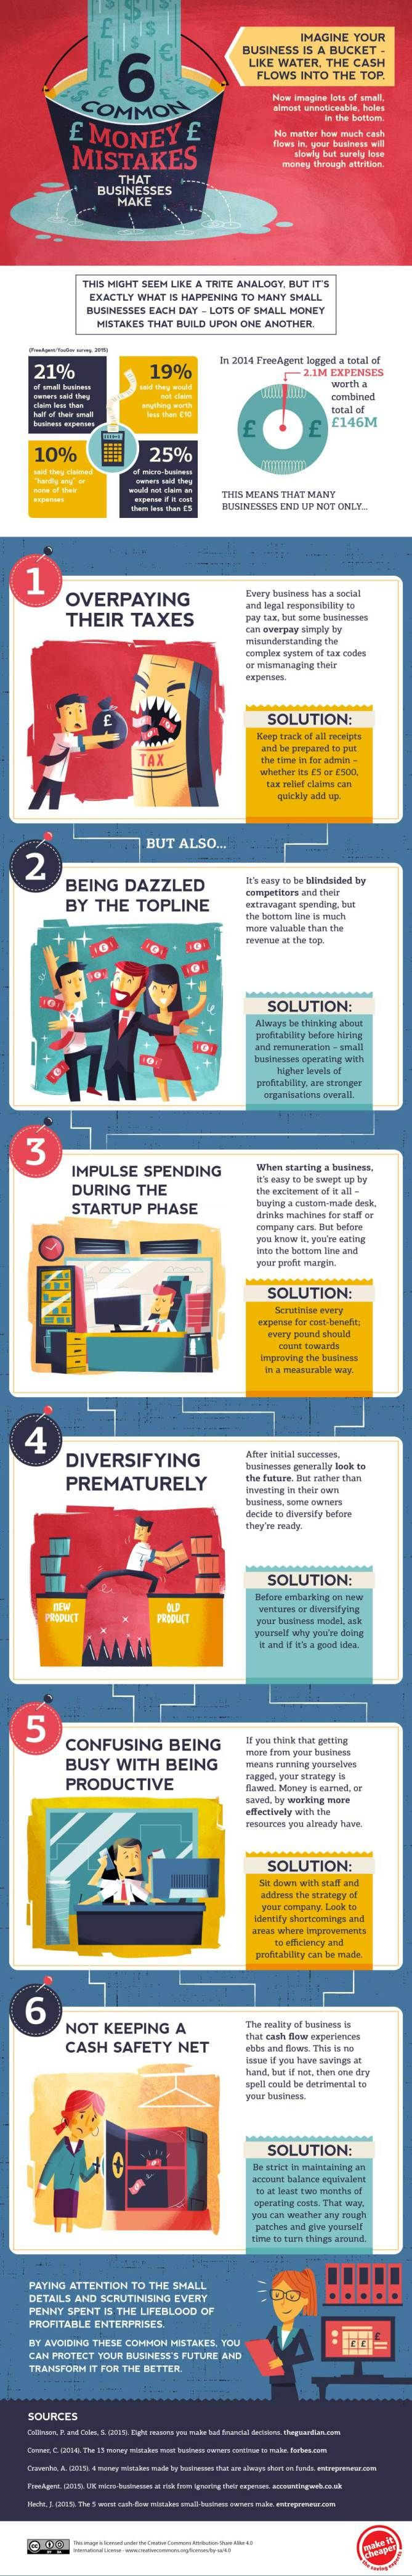 6 Cashflow mistakes your startup should avoid